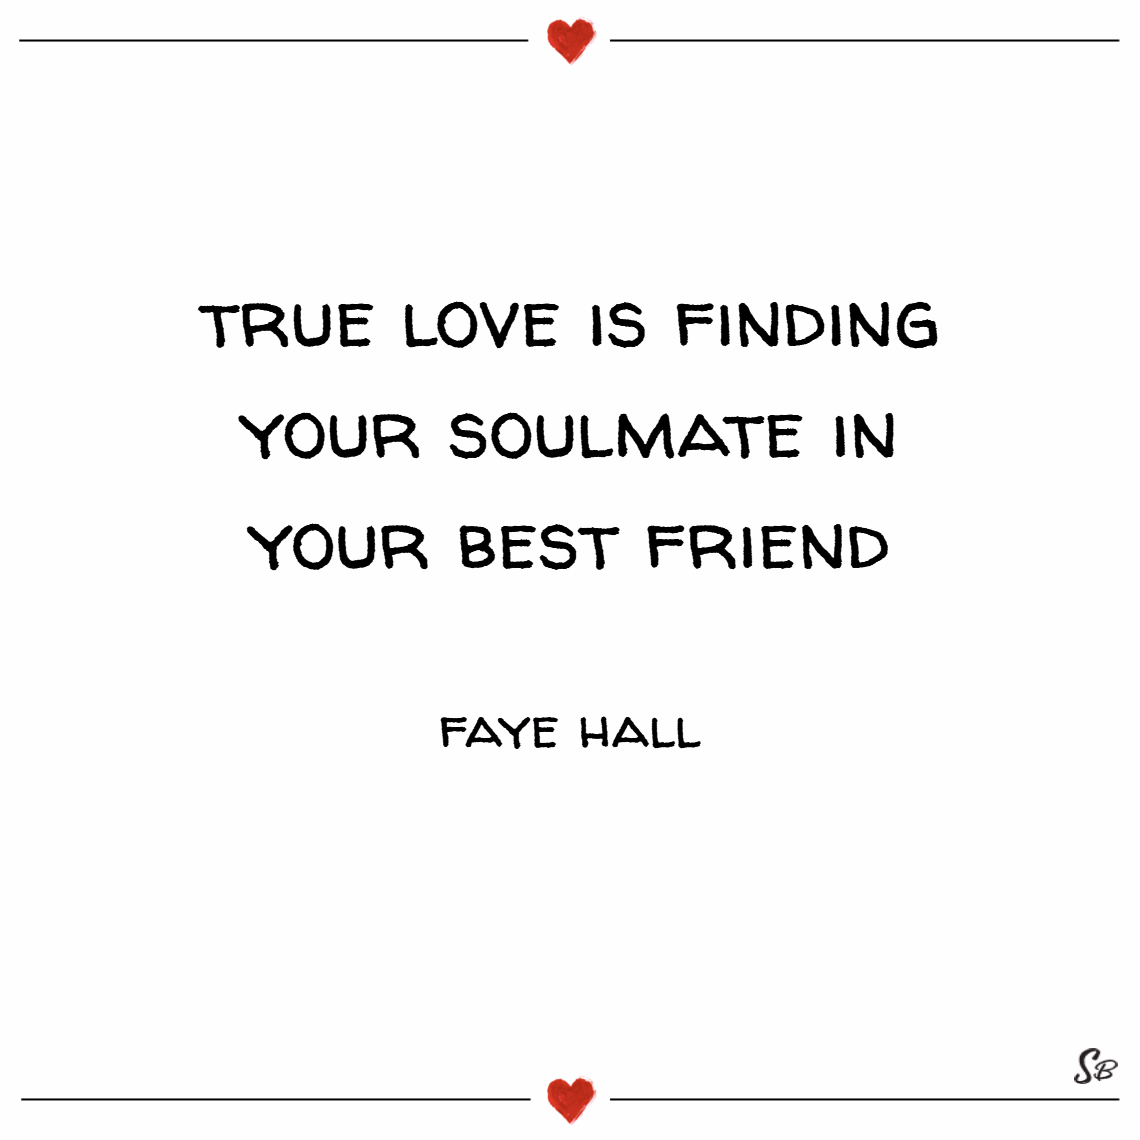 finding her love quotes By rev laurie sue brockway one of the most important parts of the journey to finding true love is faith seeking your soulmate and true love quotes and more.